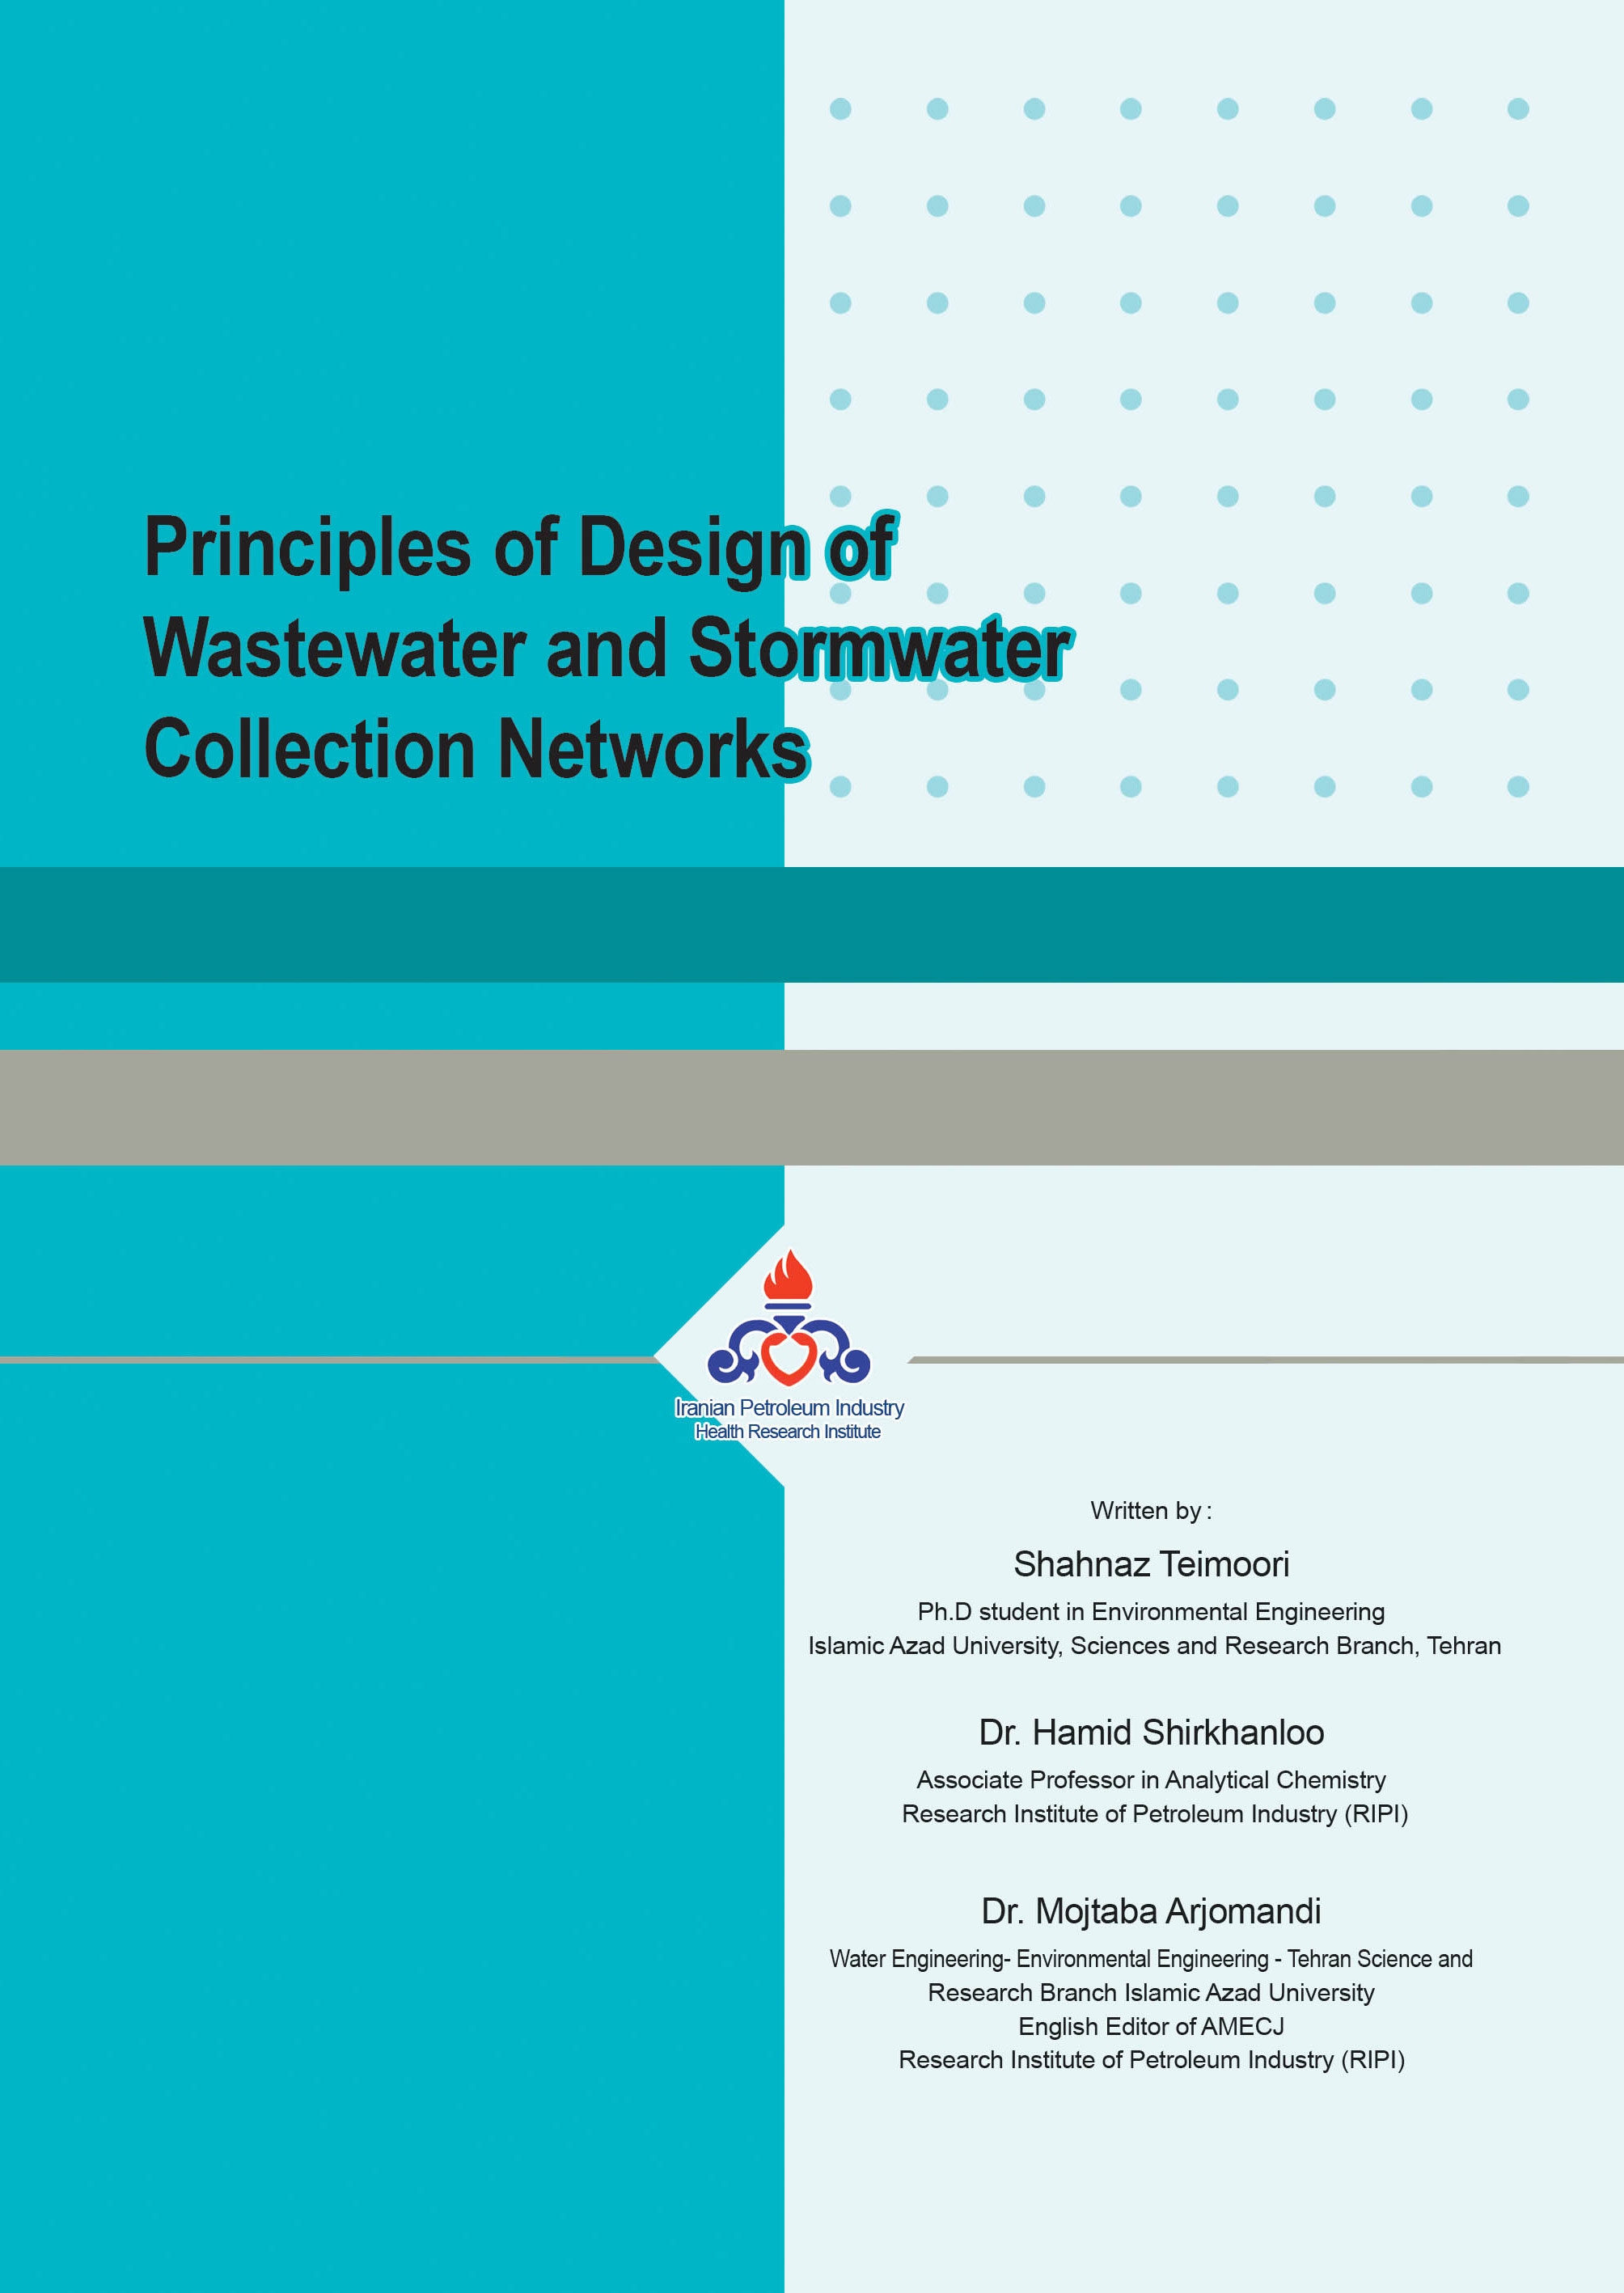 Principles of Design of Wastewater and Stormwater Collection Networks